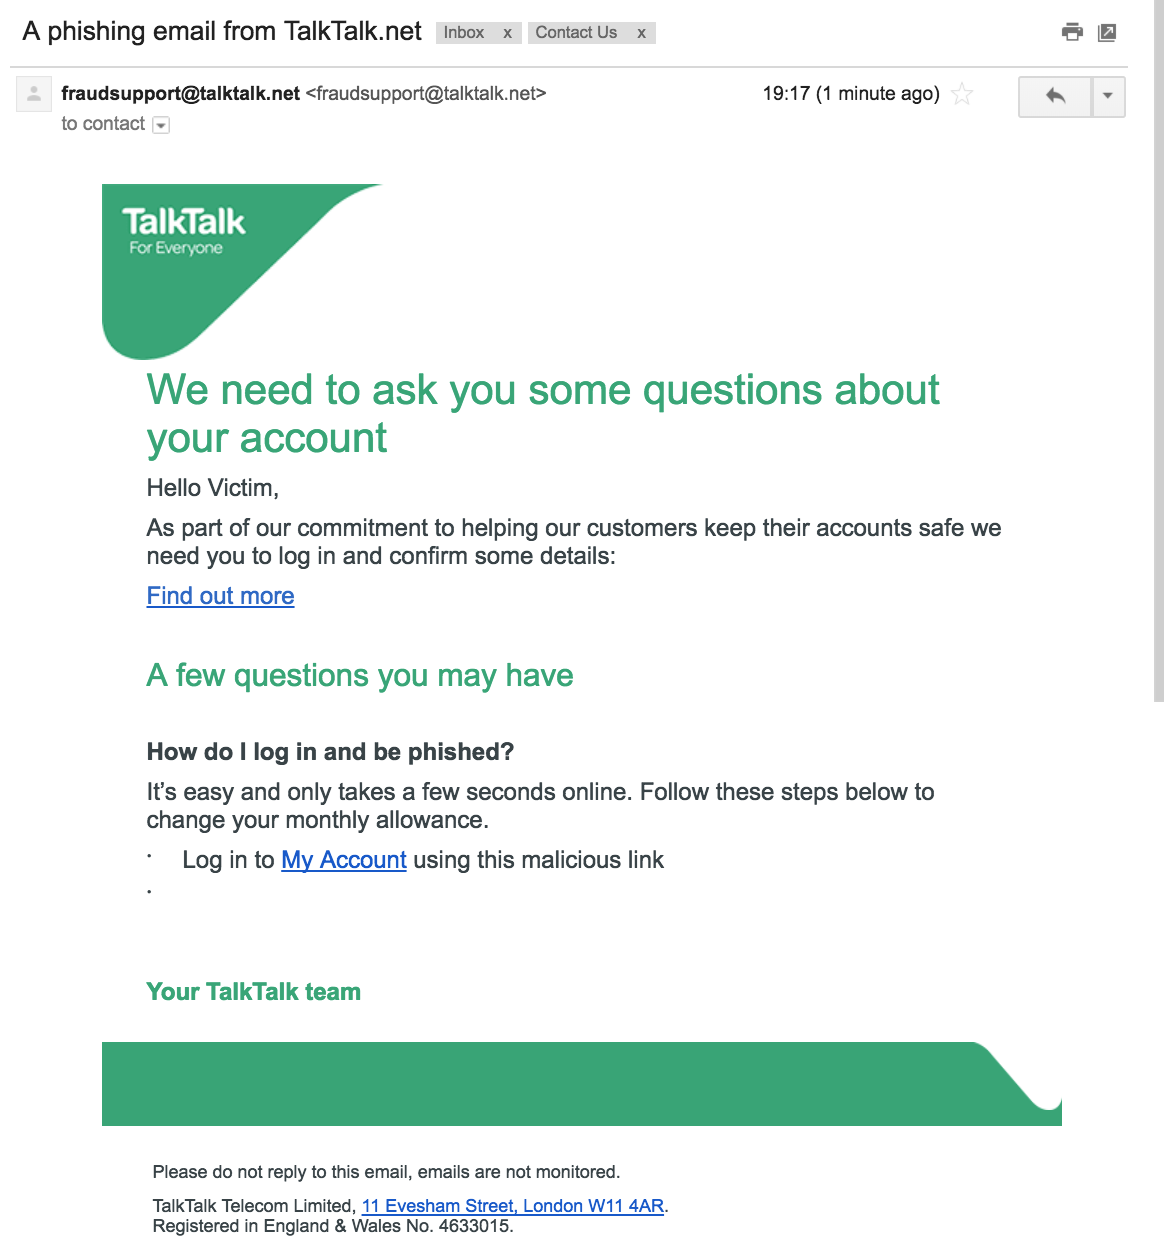 An example phishing email and what it might look like